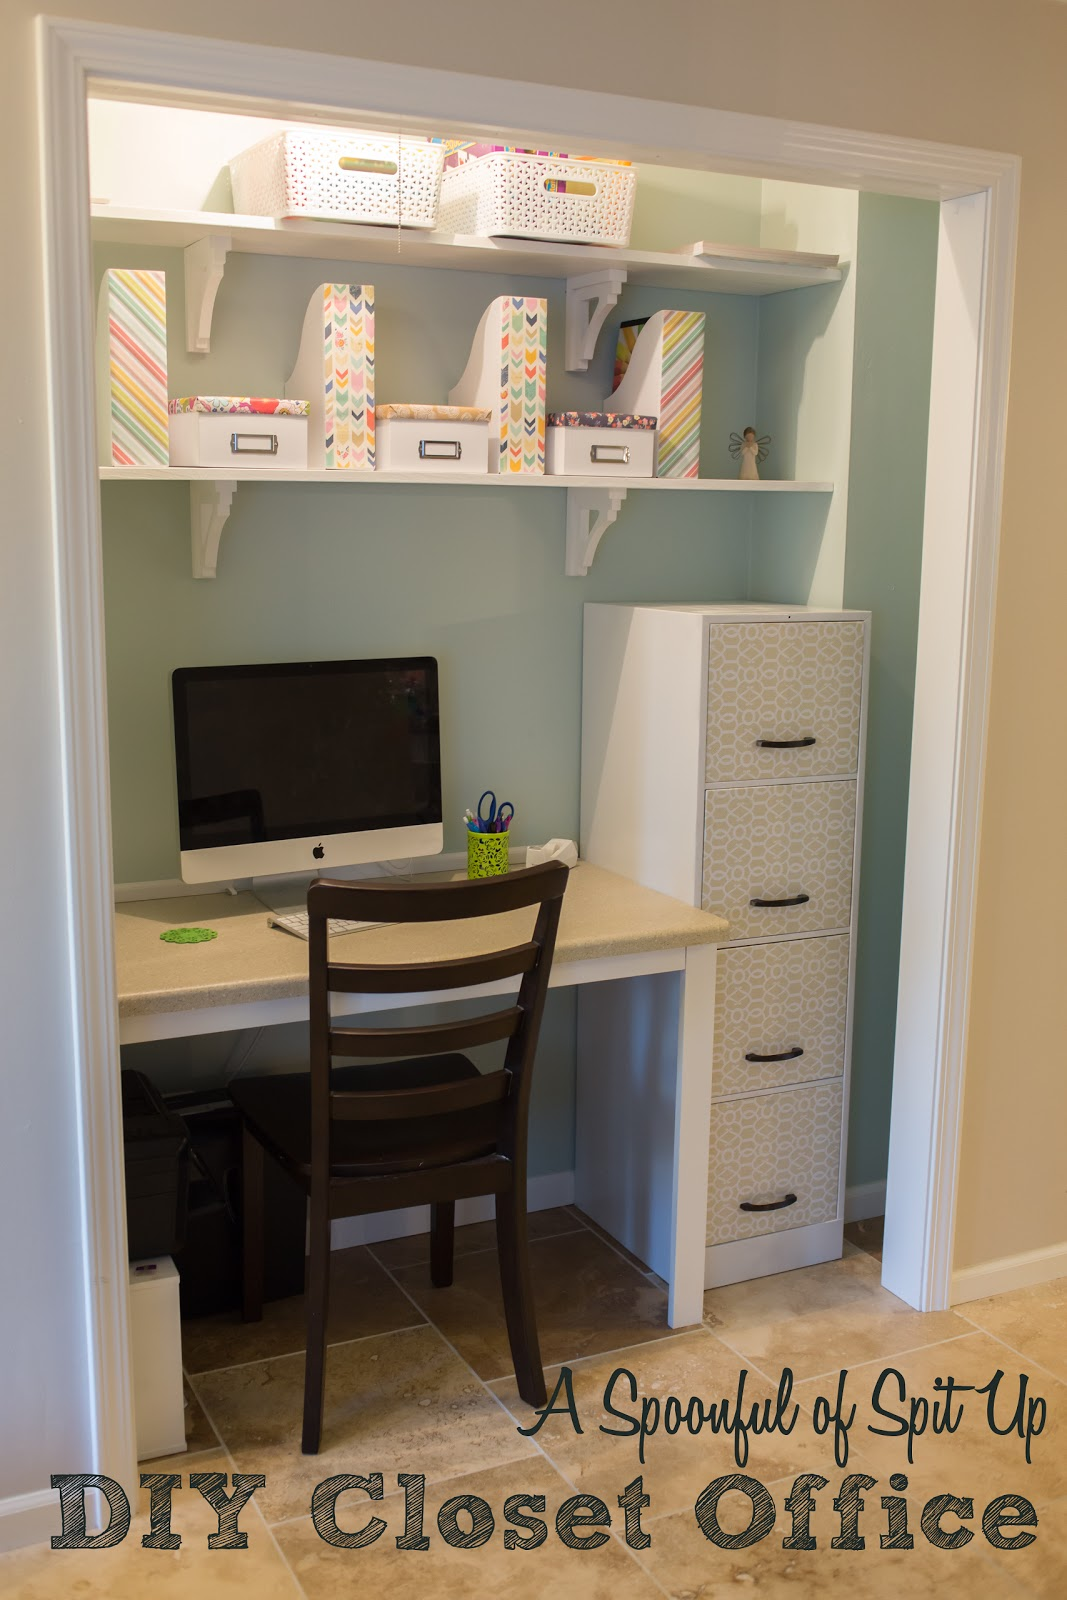 a spoonful of spit up: diy closet office!